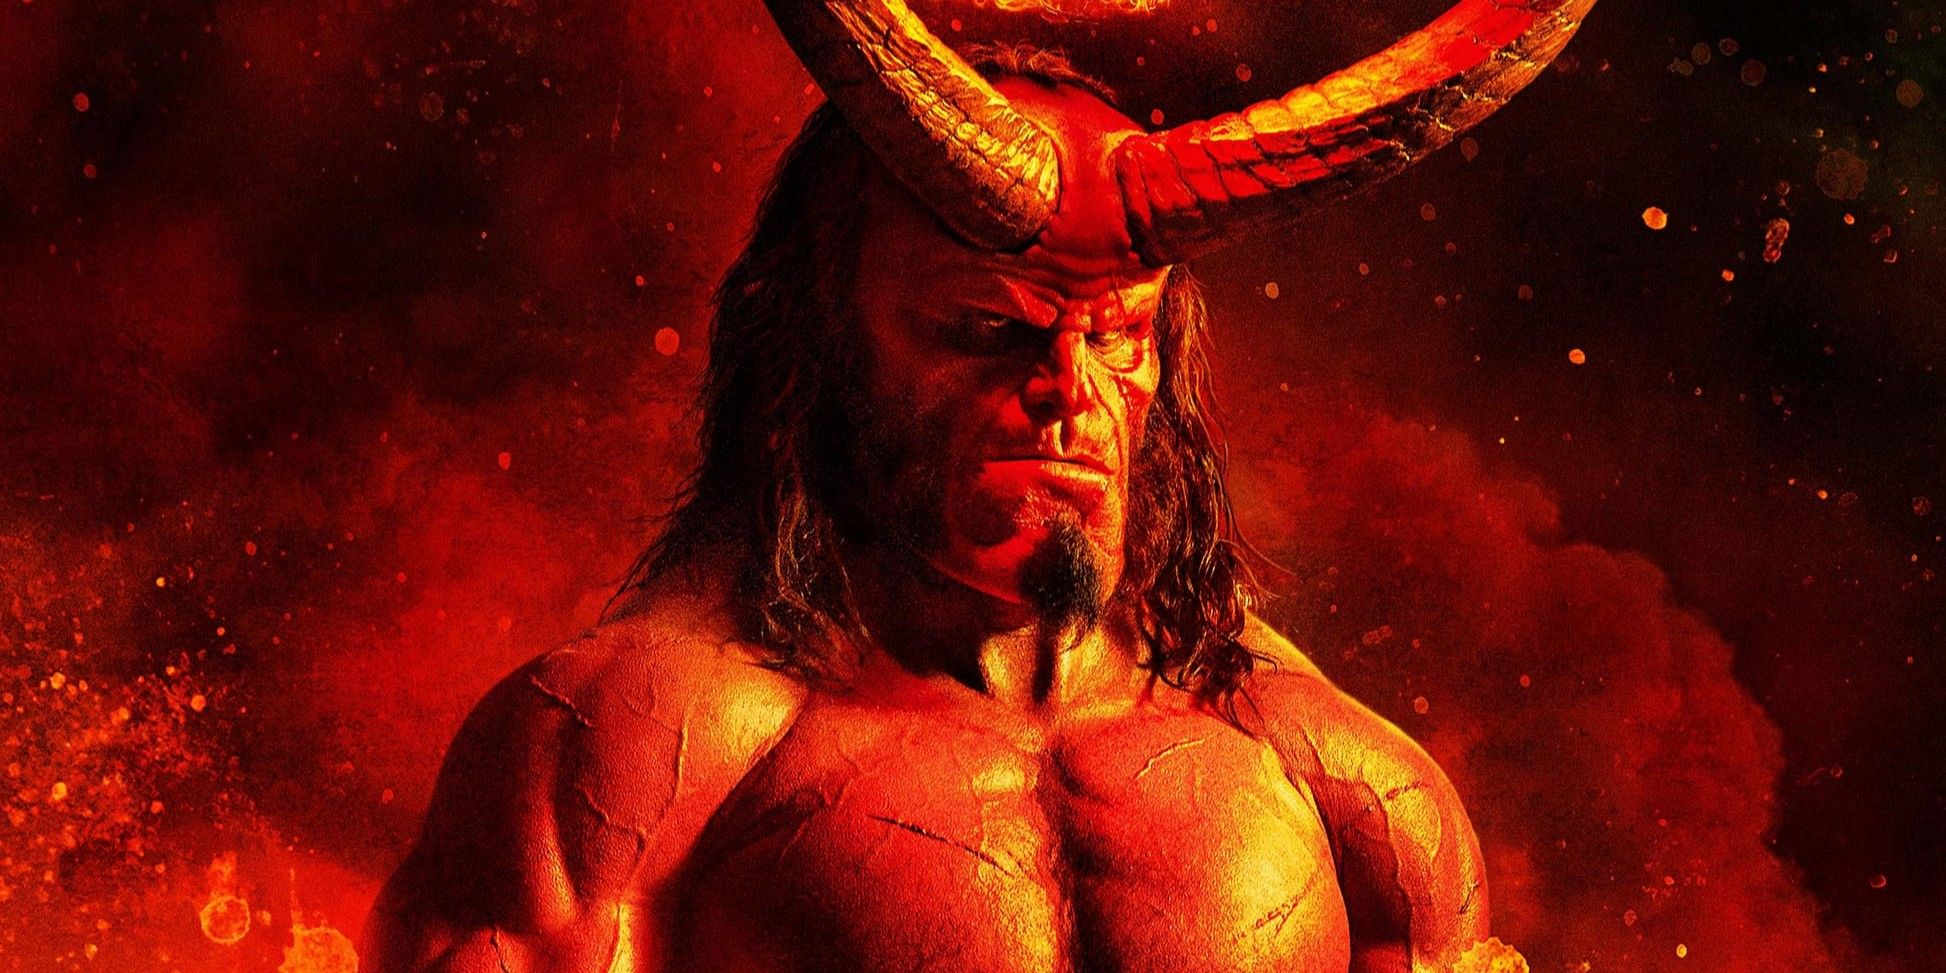 Movie Poster 2019: Hellboy Reboot Runtime Reportedly Revealed To Be Exactly 2